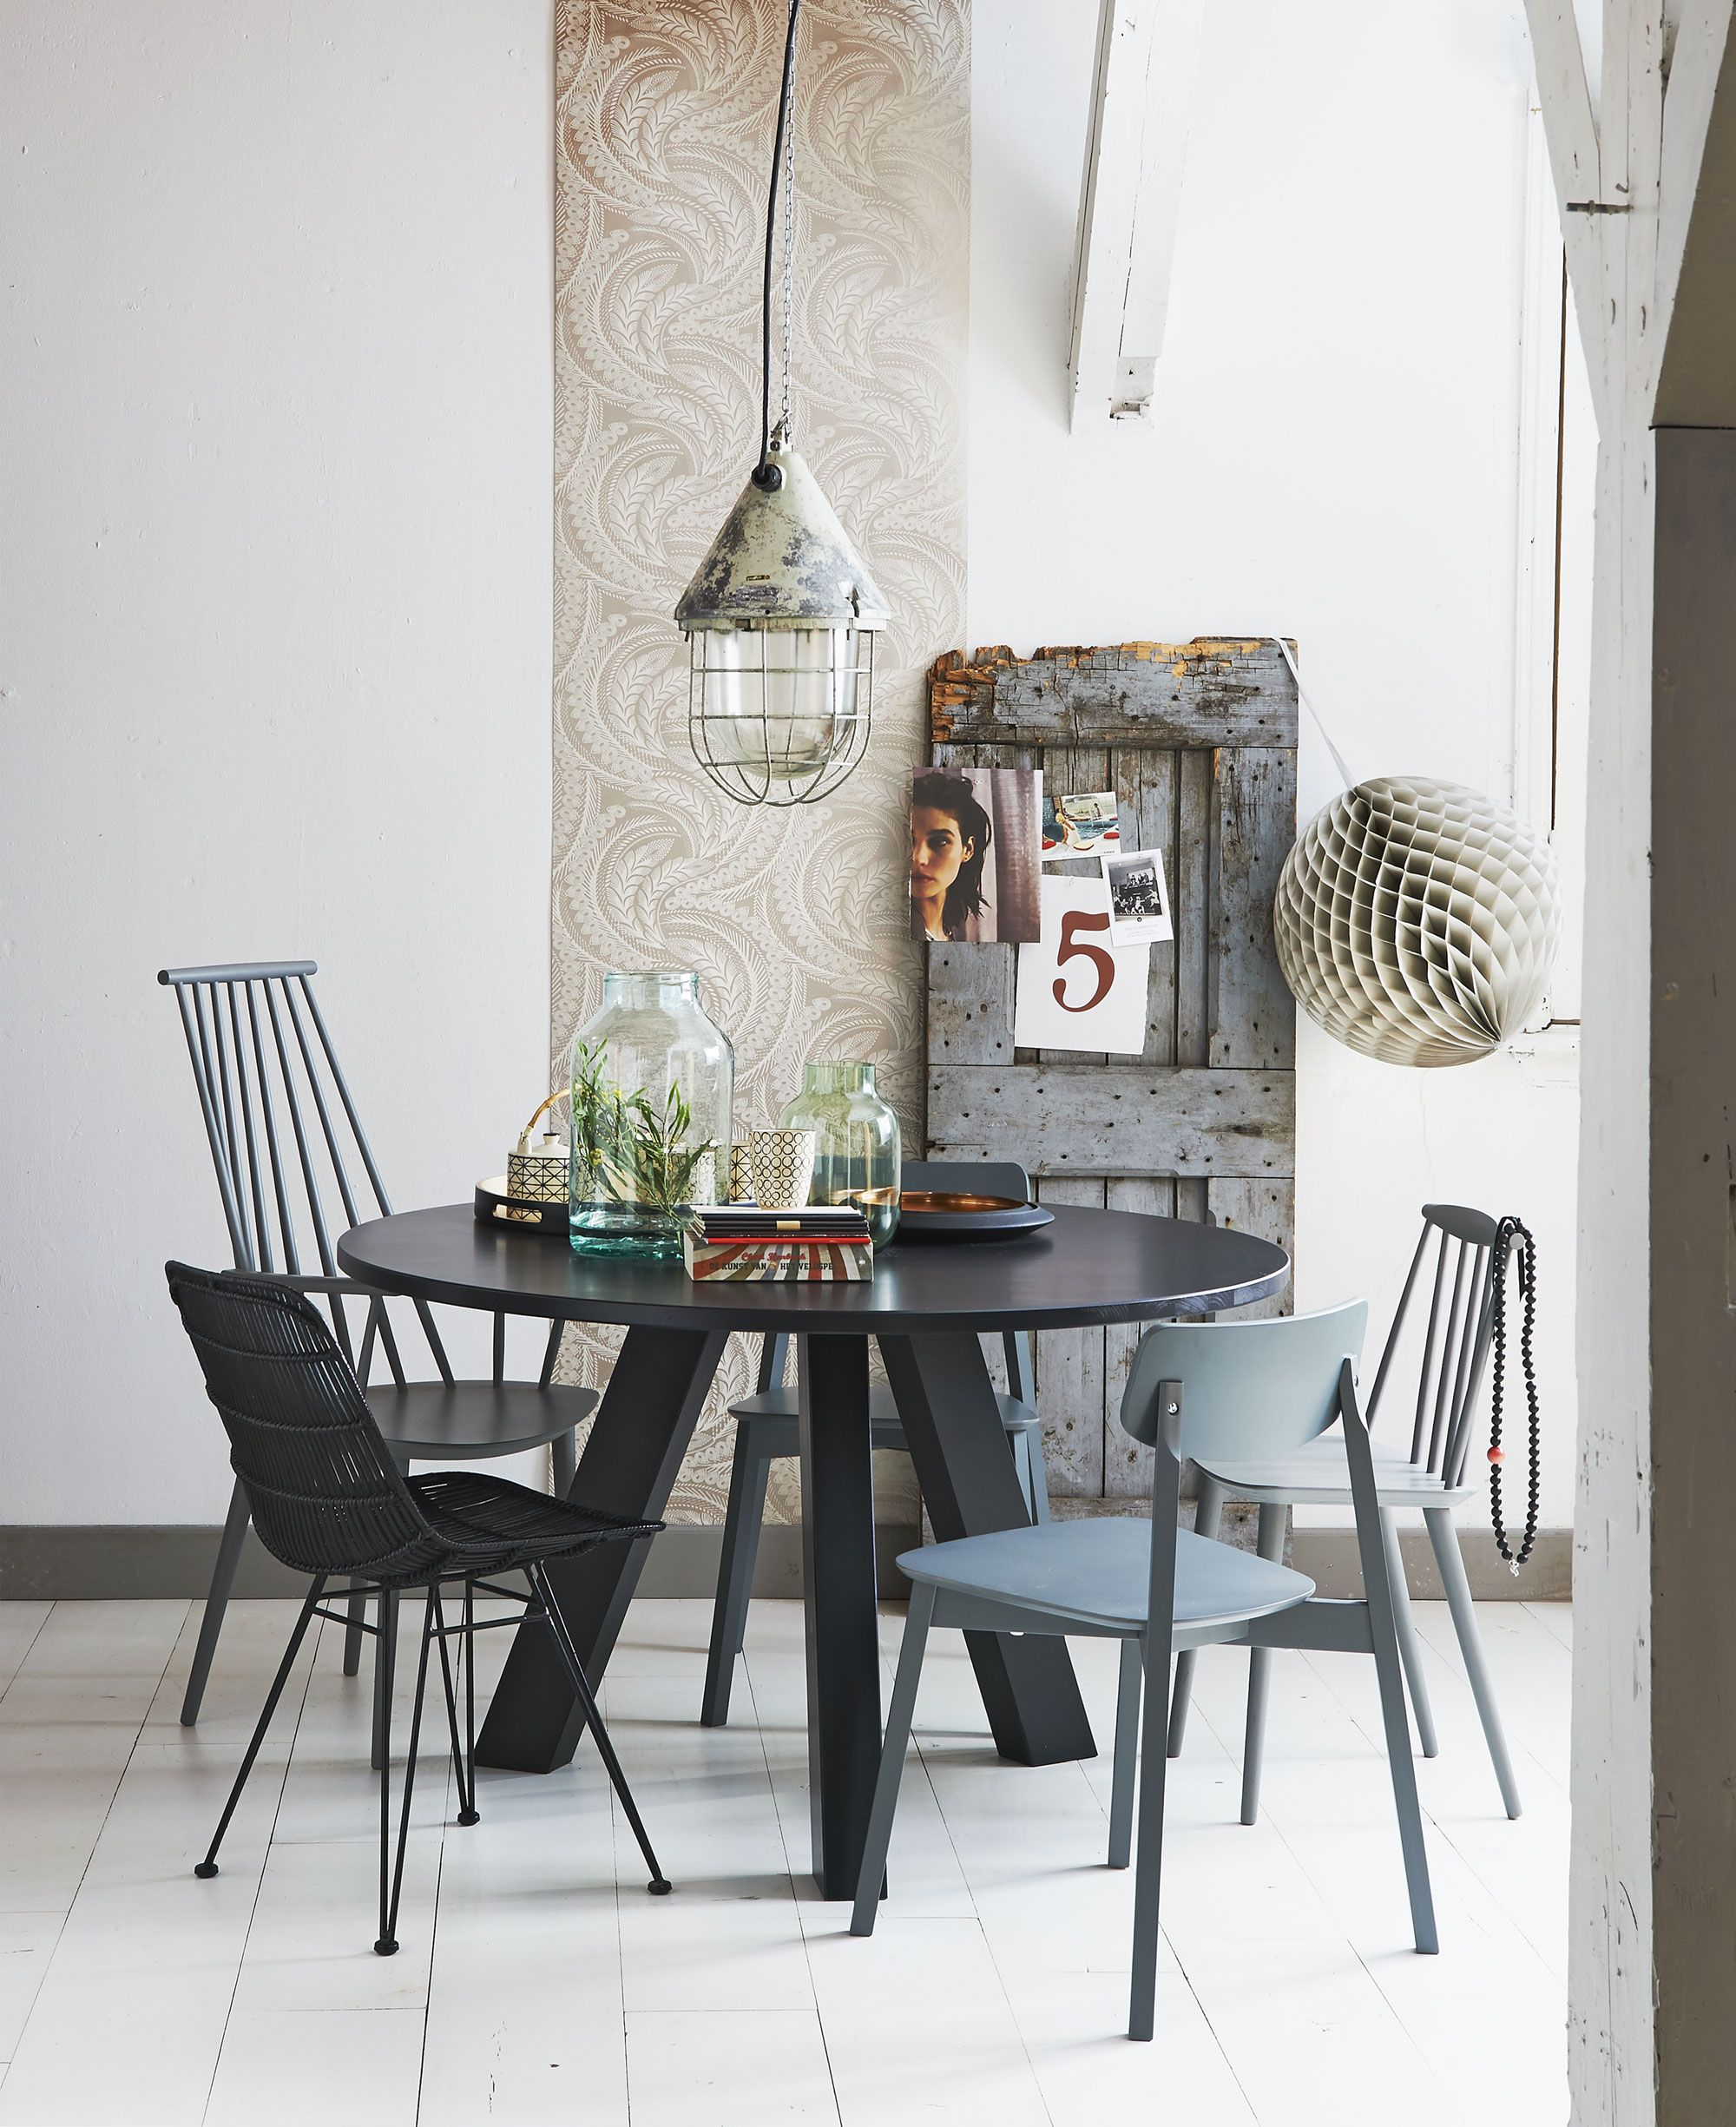 Amazing Black Round Dinig Table Design | Round Dining Table for ...